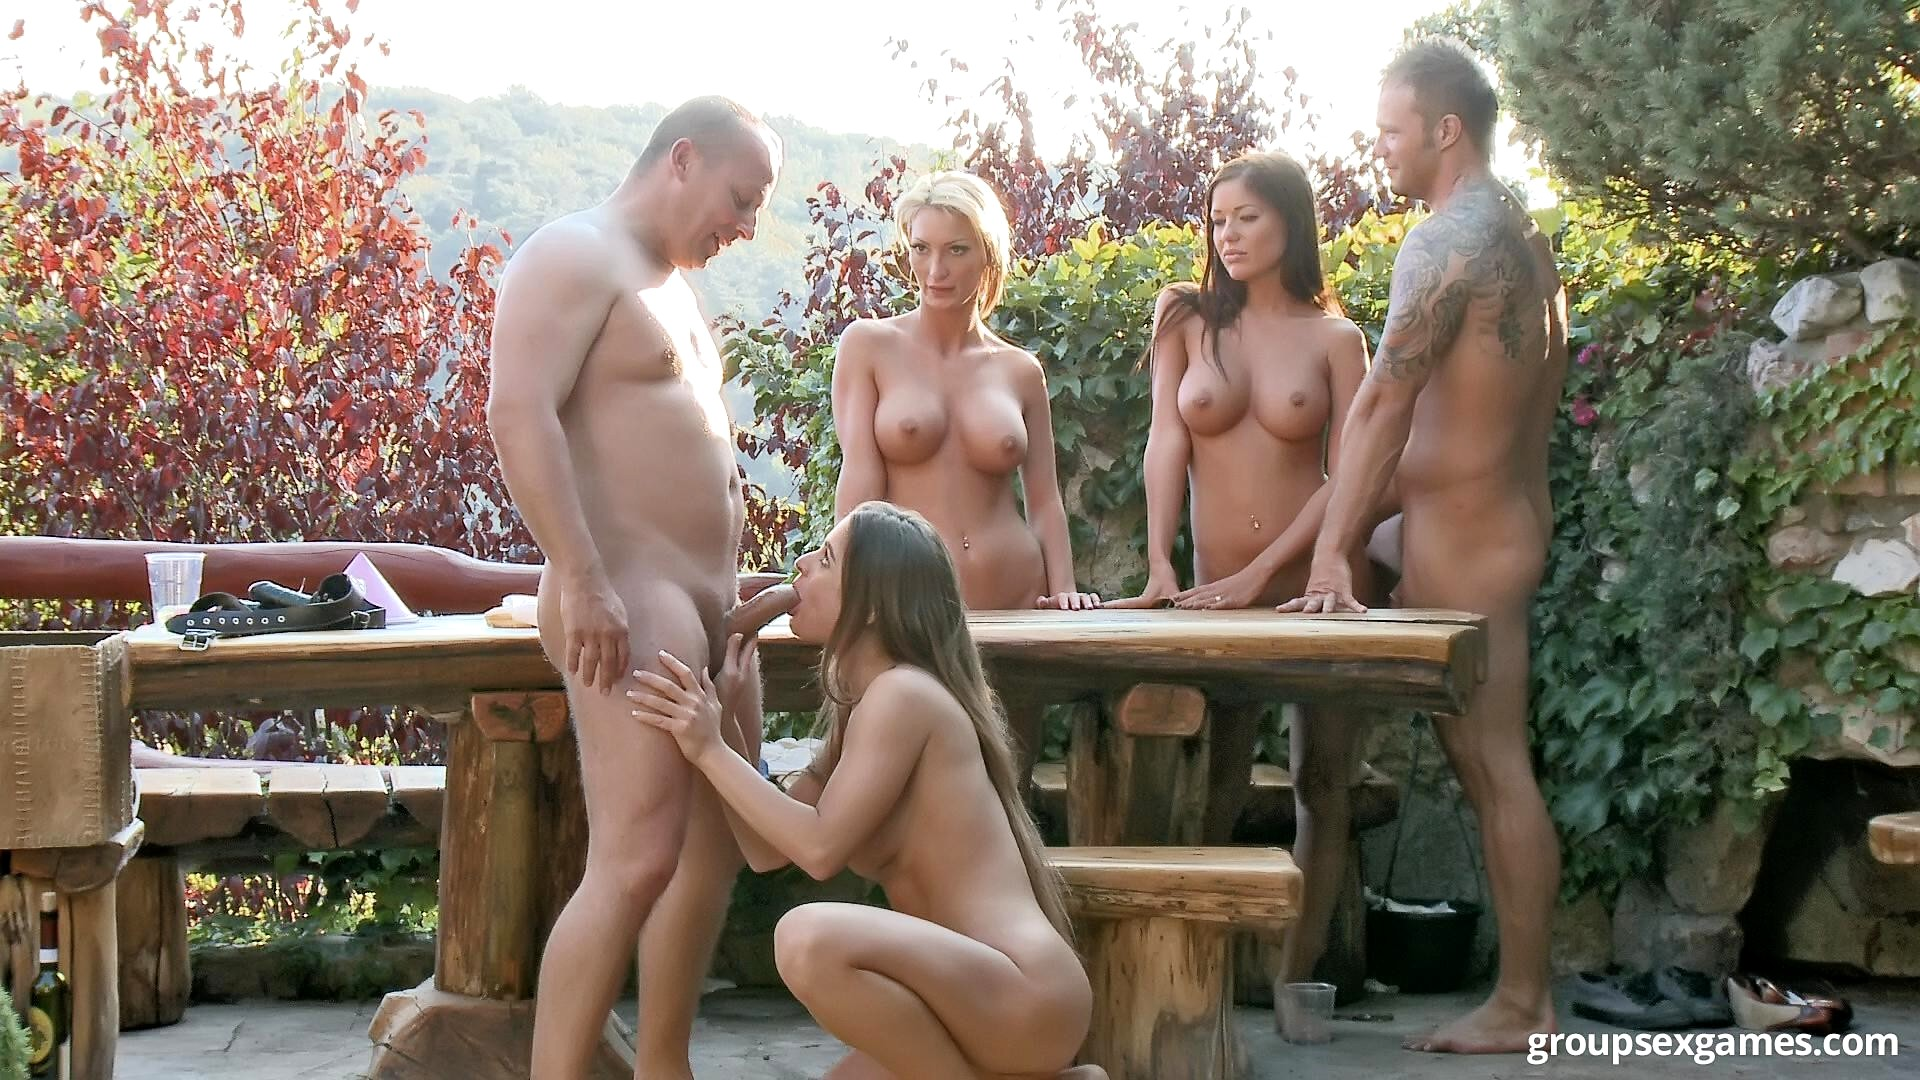 free group sex games